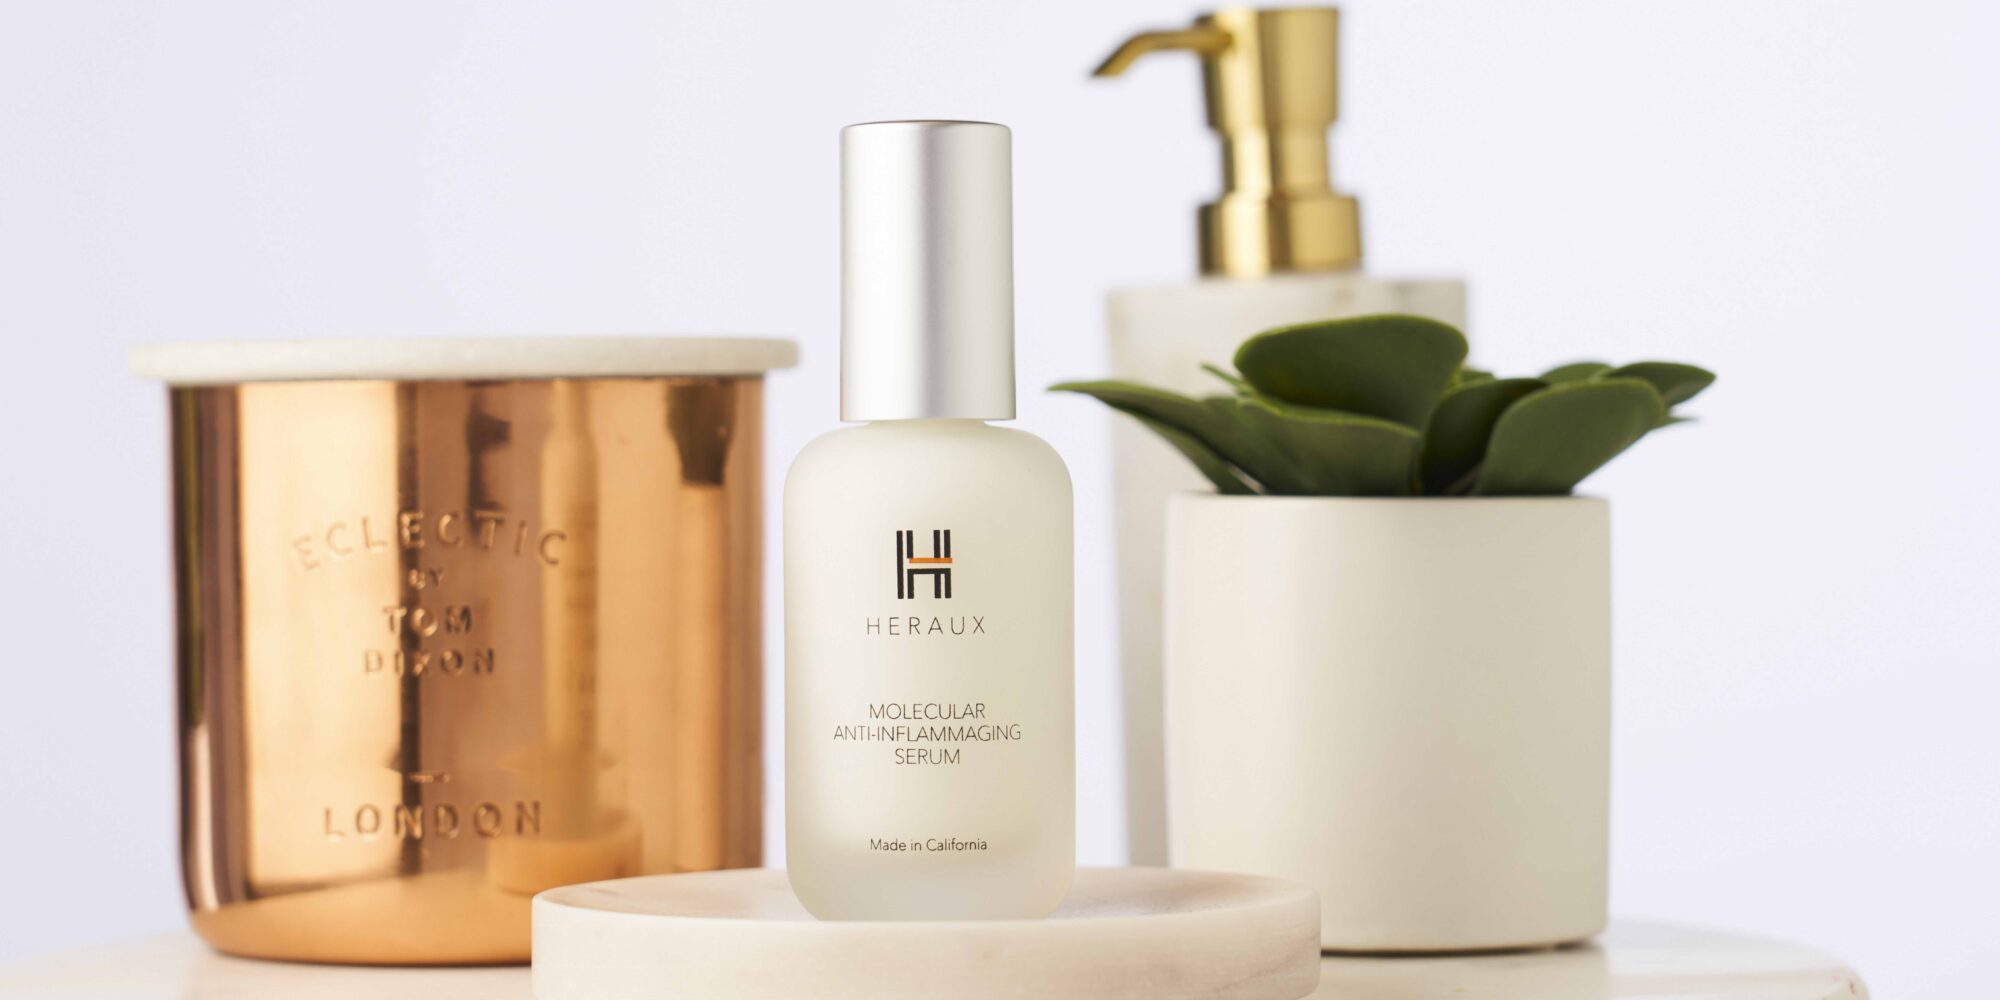 A $250 Serum For Twentysomethings? Revolve Says Absolutely And Brings In Pricy Scientific Brand Heraux